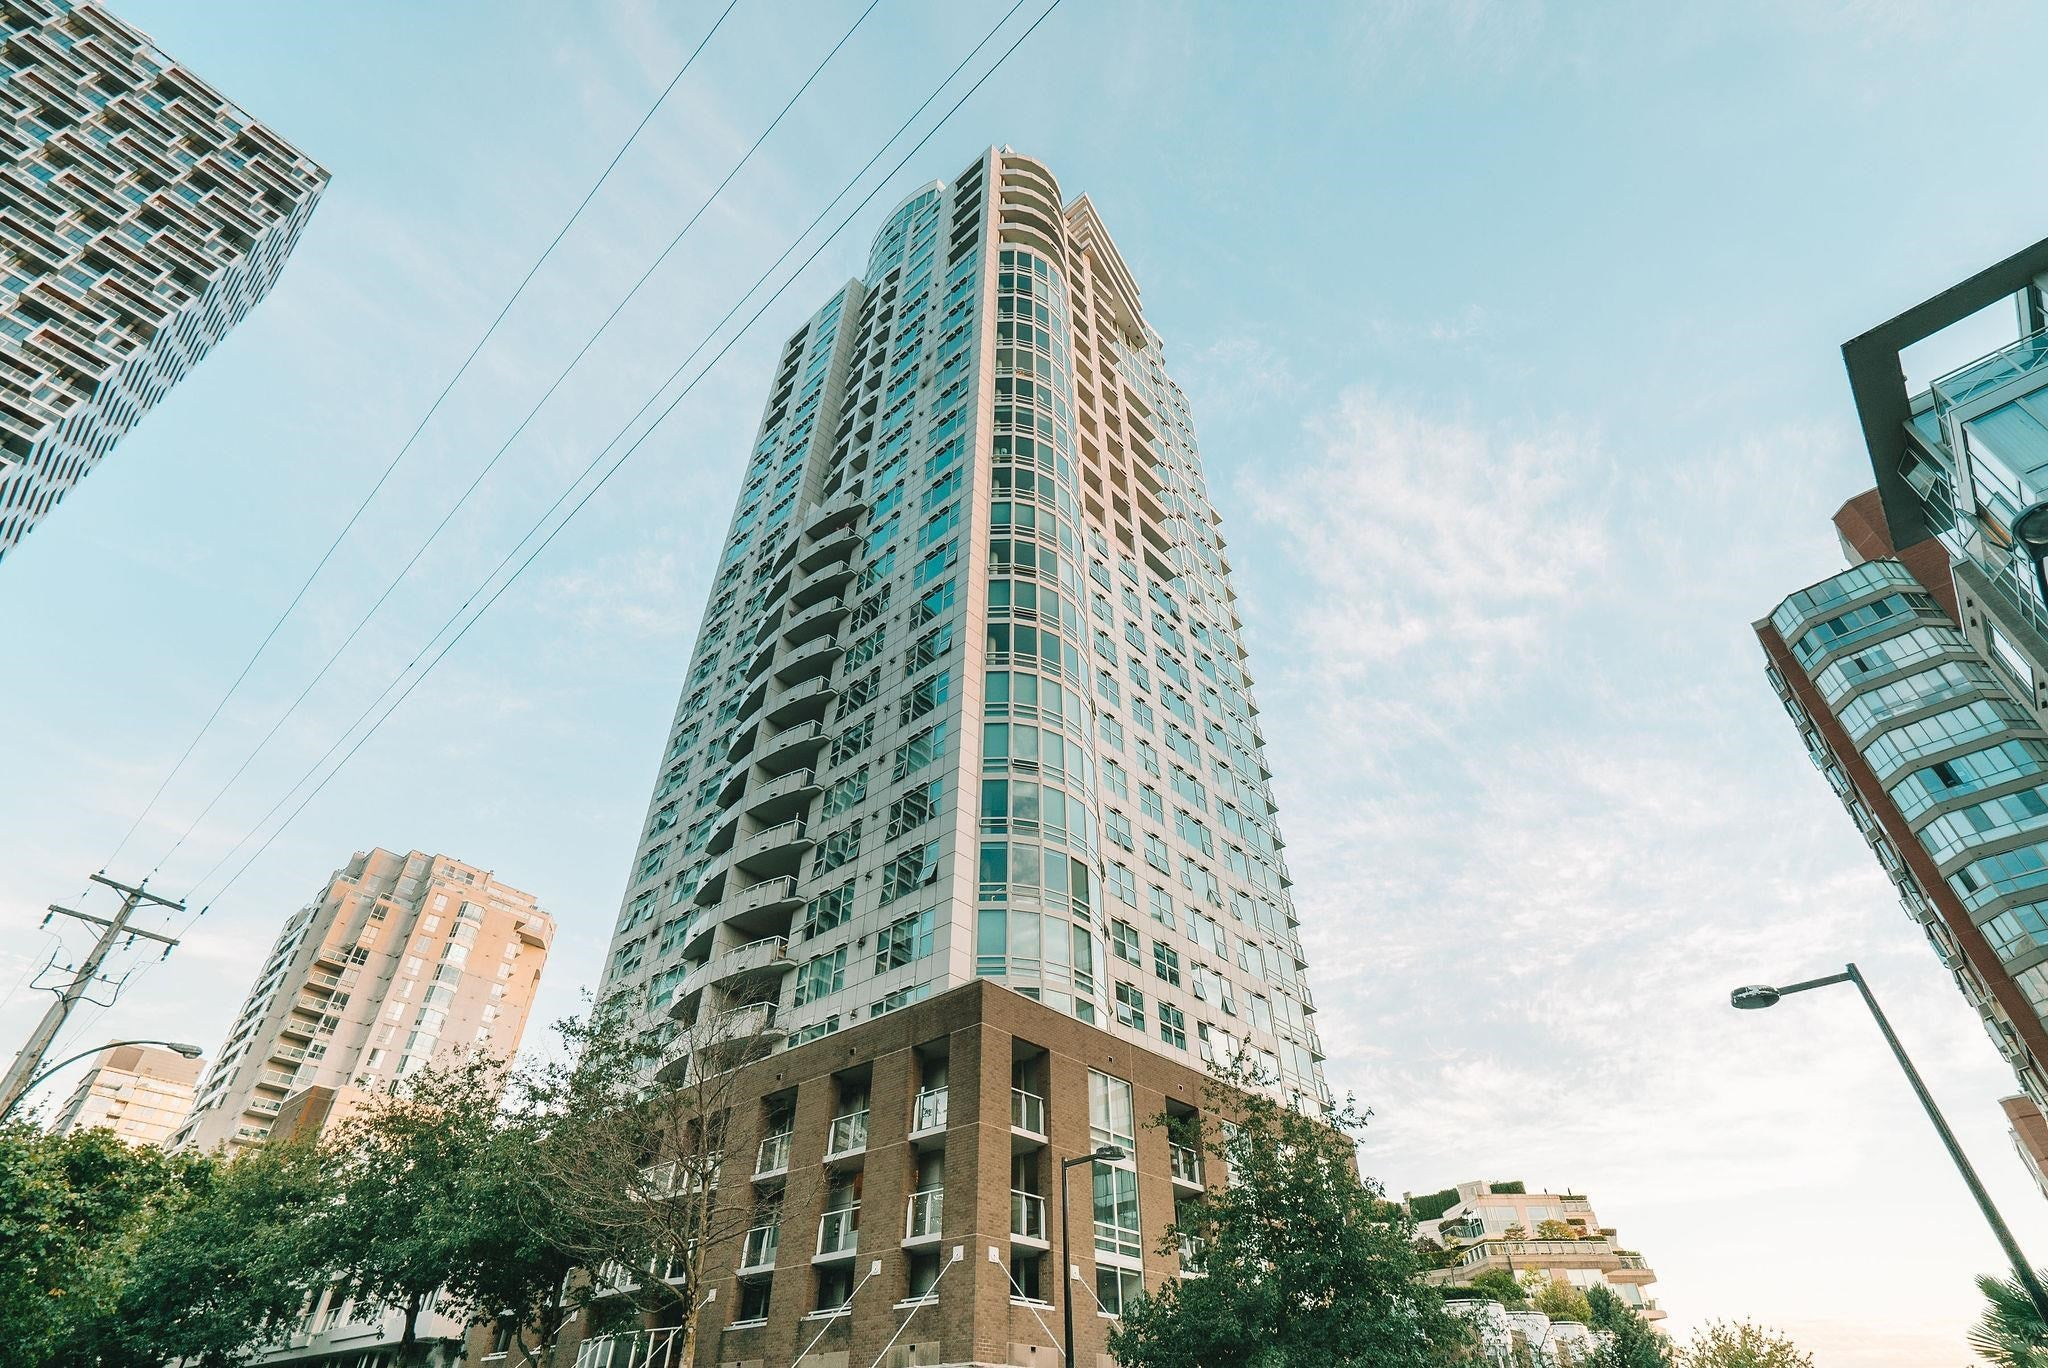 1009 1500 HORNBY STREET - Yaletown Apartment/Condo for sale, 2 Bedrooms (R2617441) - #2